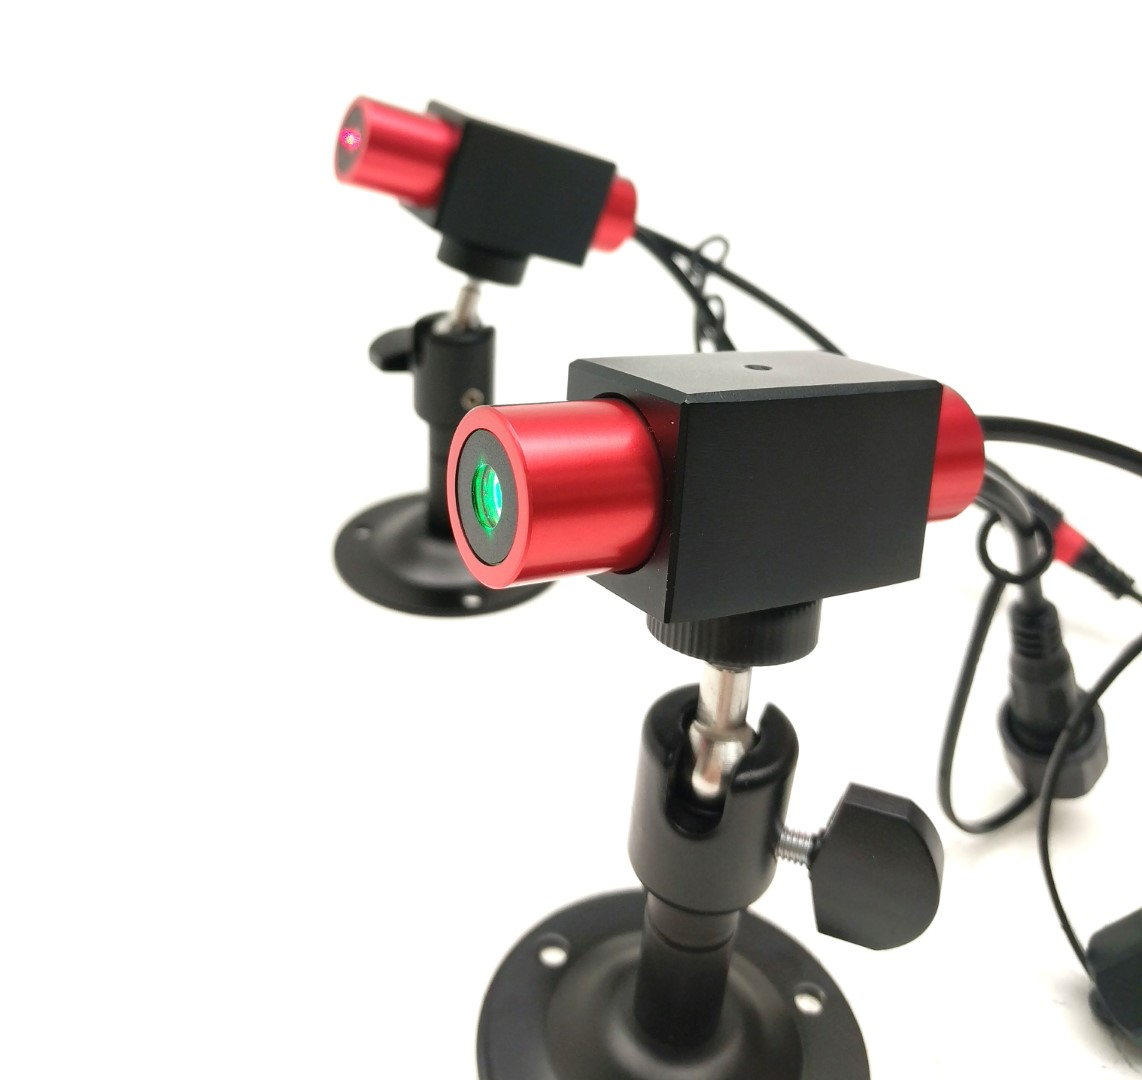 5 mW 520 nm Green Premium Structured Reticle Laser, 18° fan angle, adjustable focus, TTL+, Sealed IP67